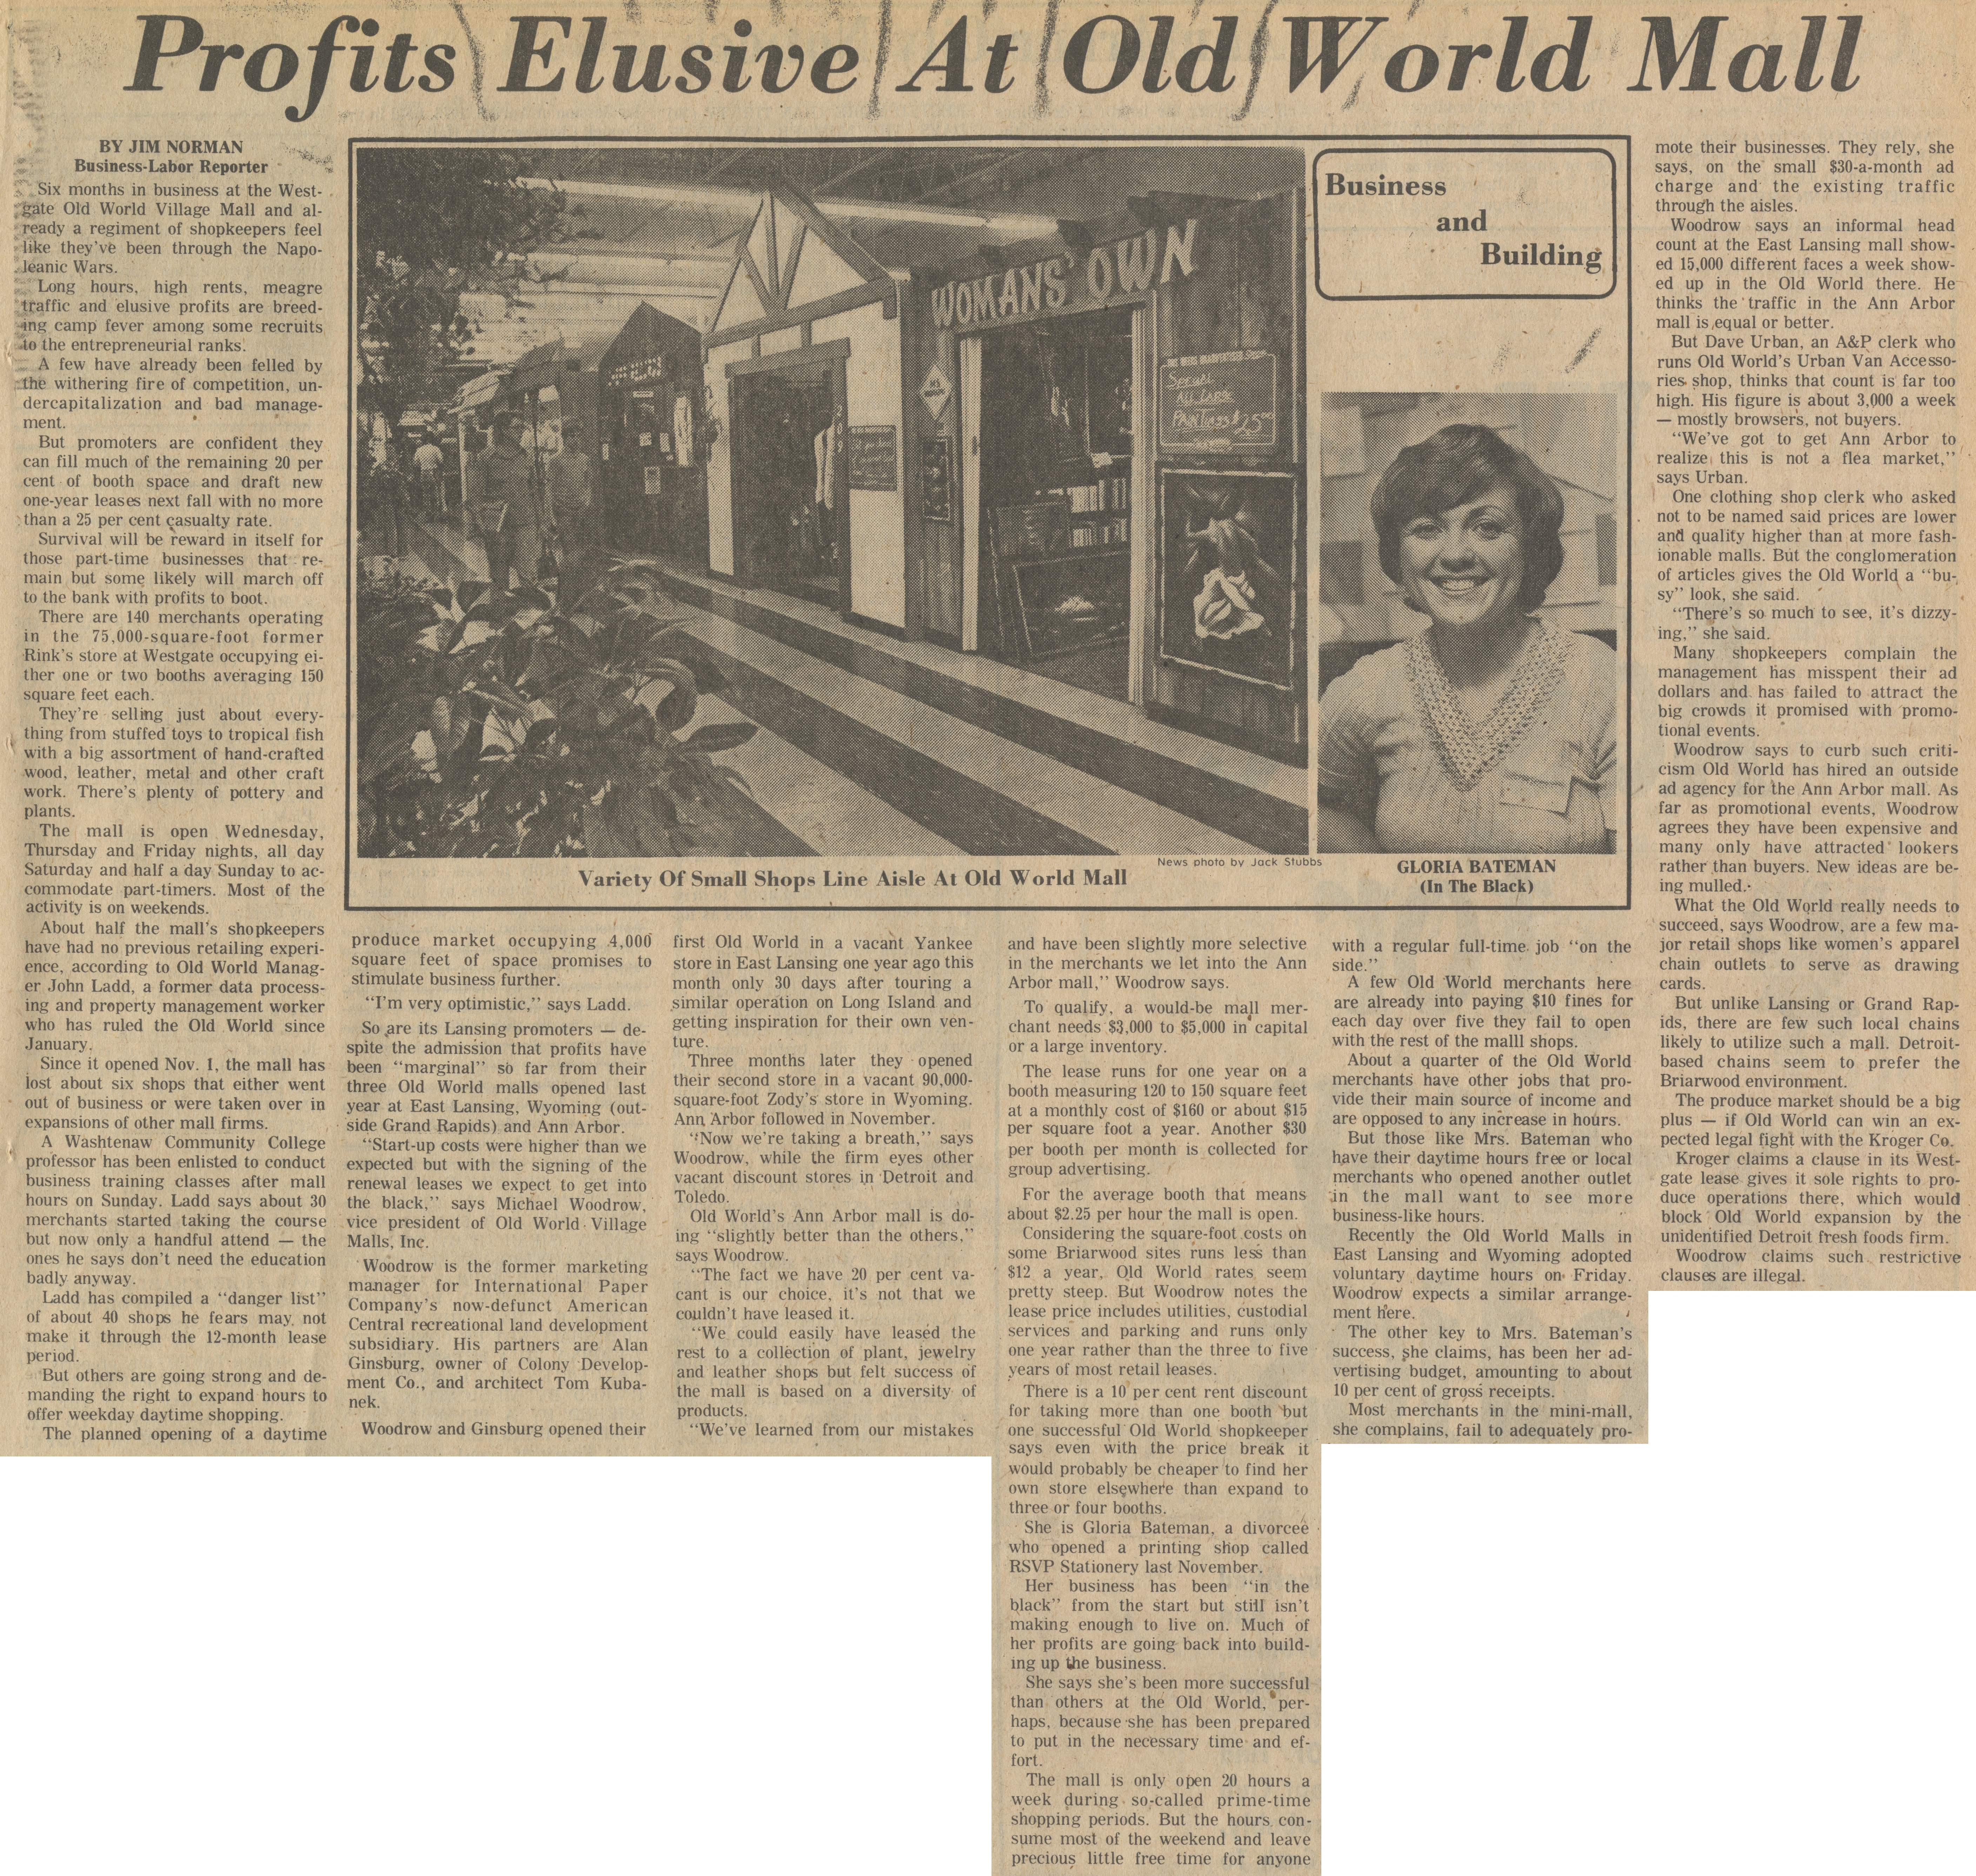 Profits Elusive At Old World Mall image